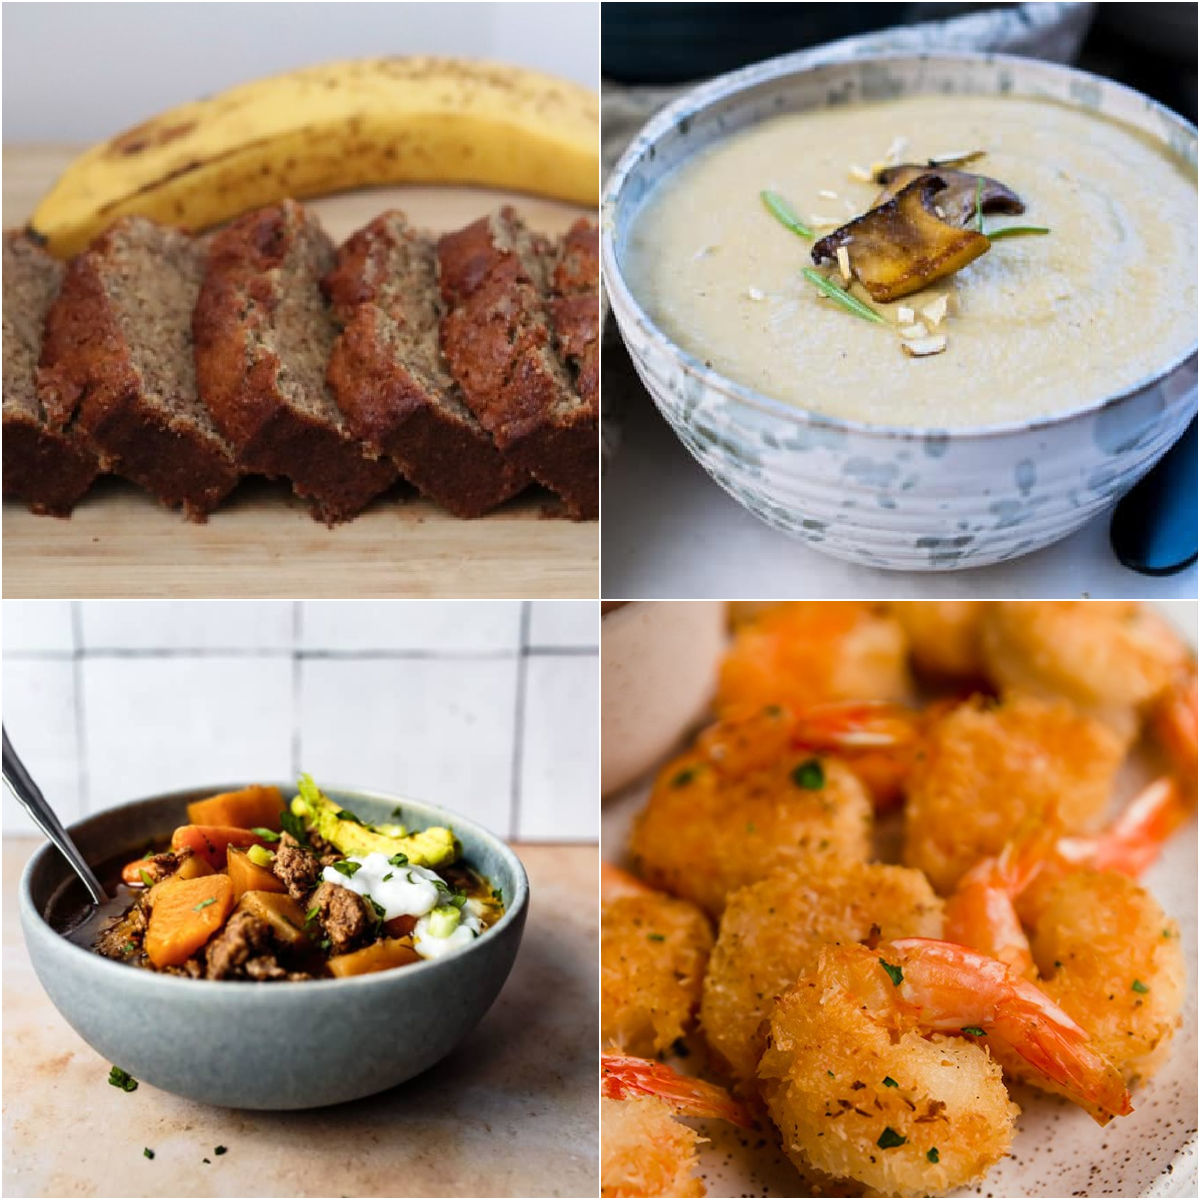 Paleo AIP Recipe Roundtable #351 | Phoenix Helix - *Featured Recipes: Banana Bread, Cozy Instant Pot Chili, Cream of Mushroom Soup, and Oven Baked Coconut Shrimp.